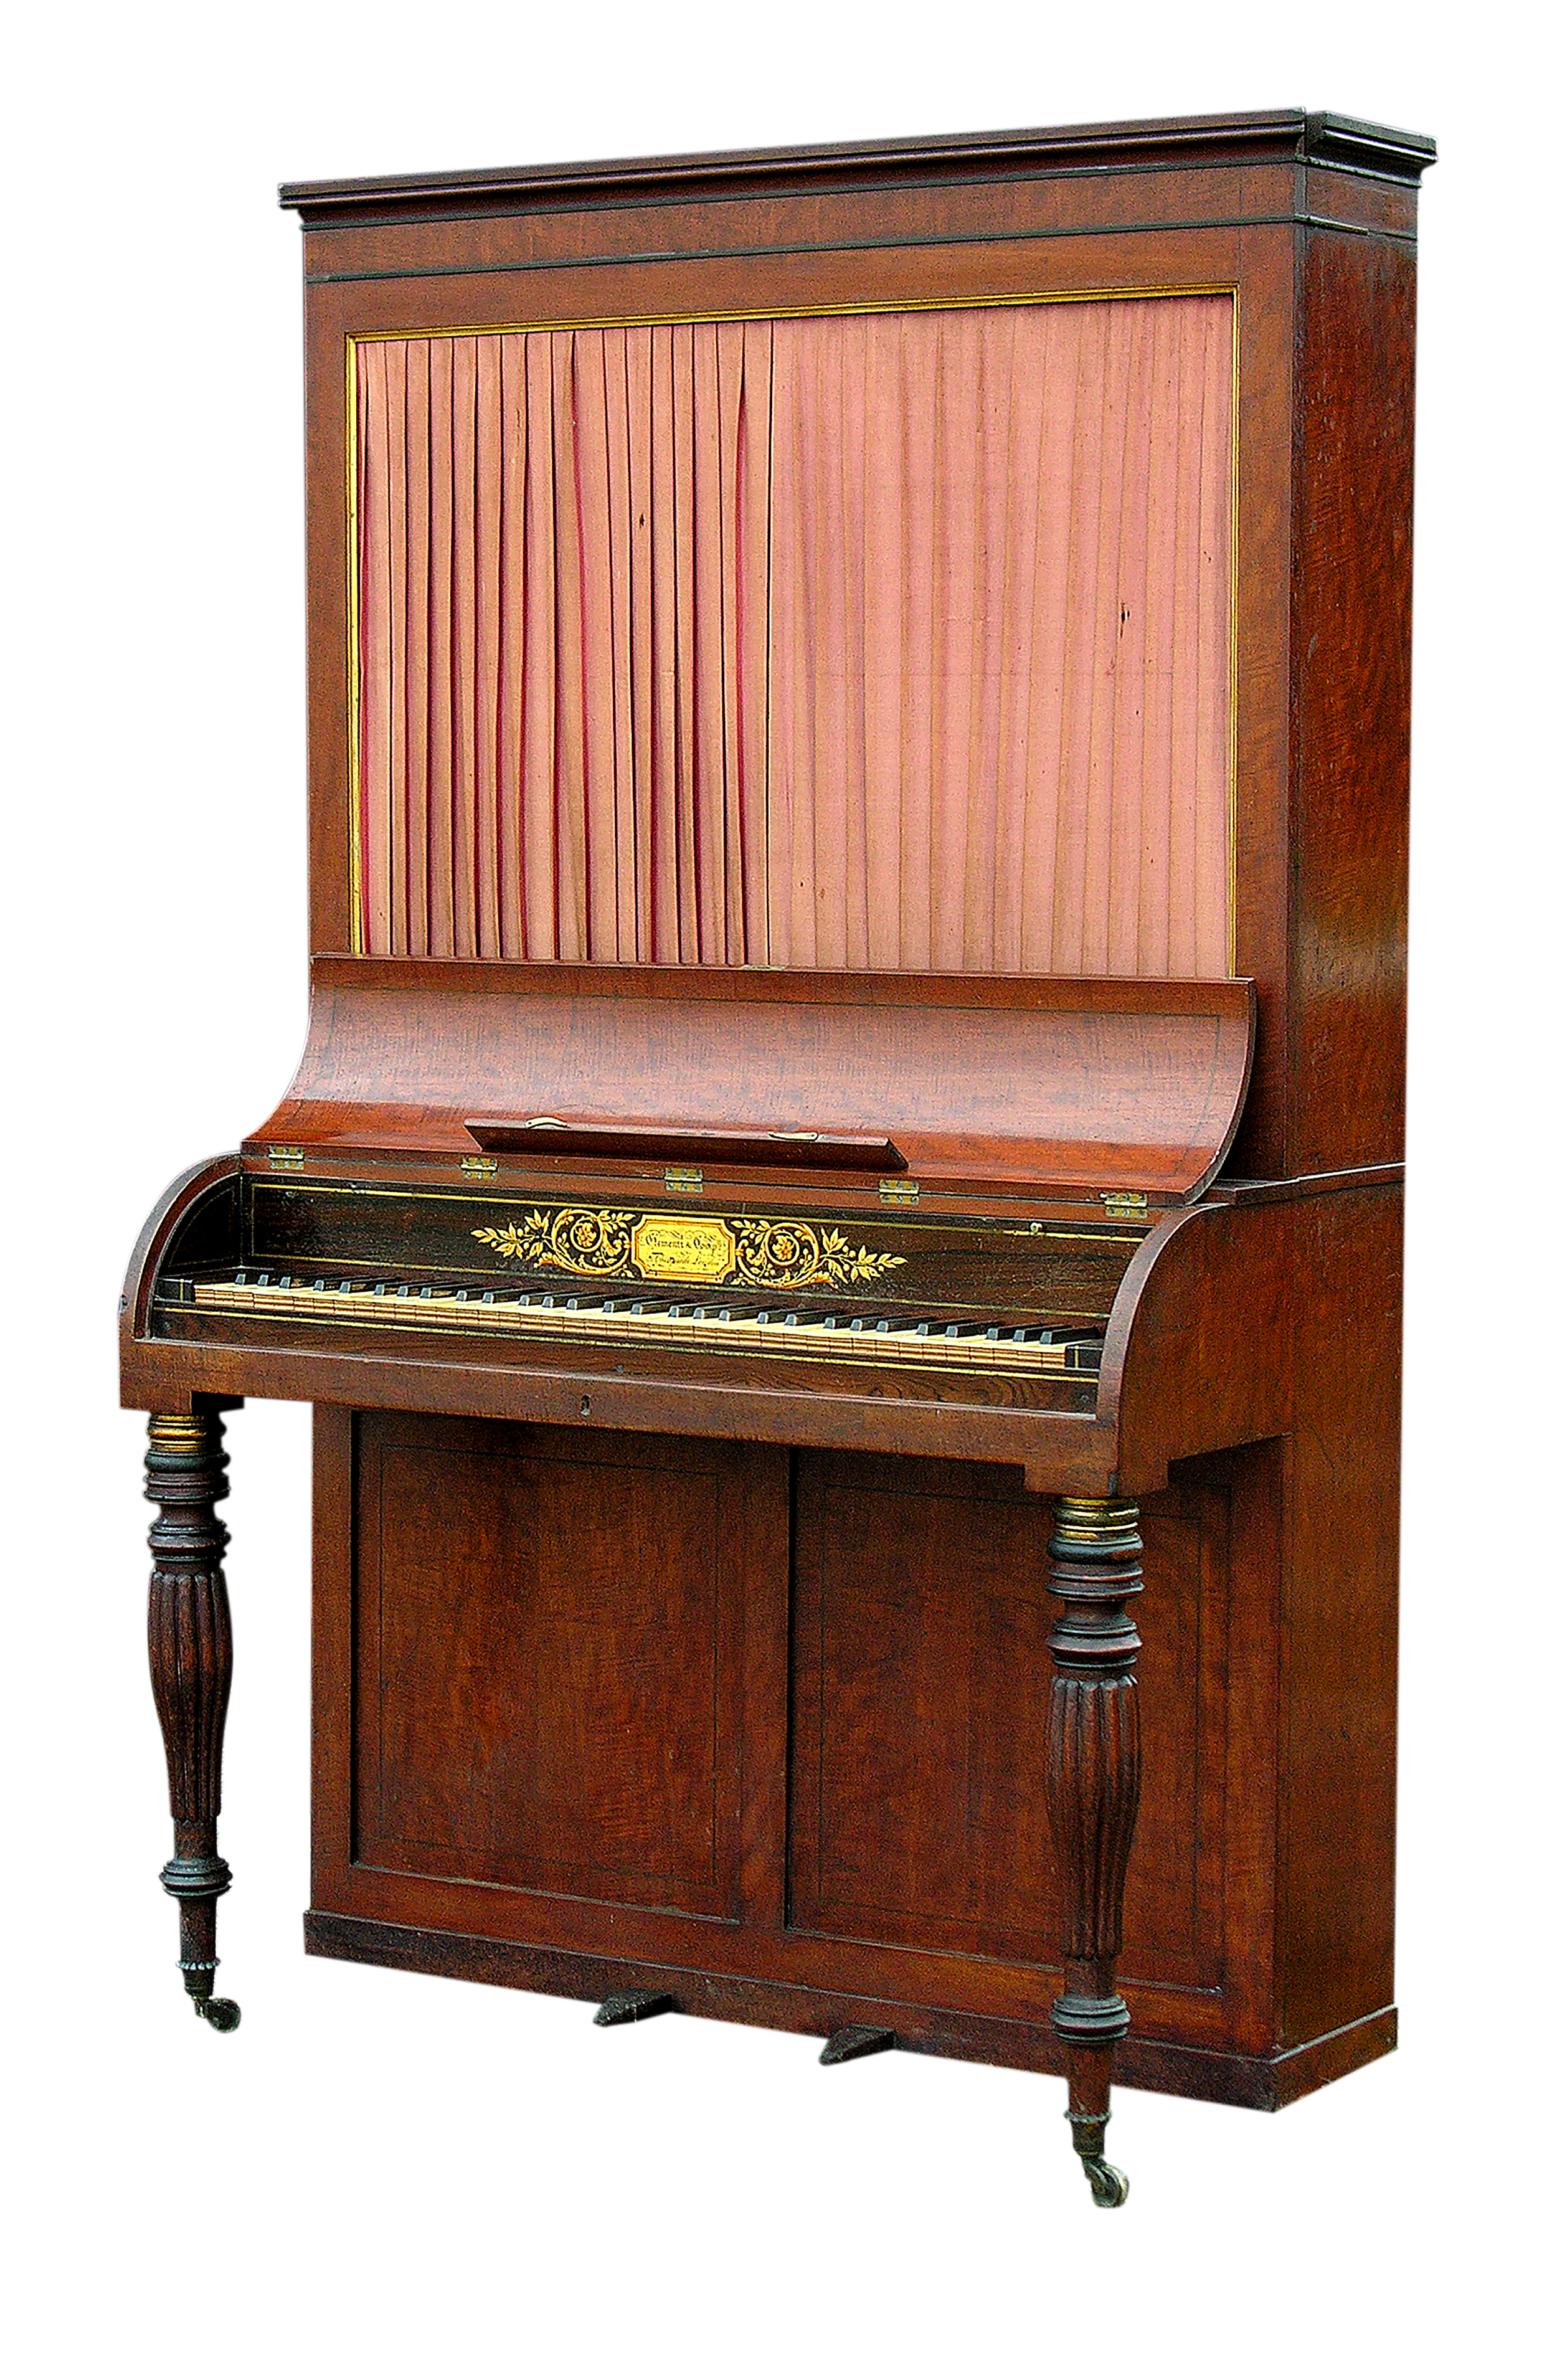 Clementi piano, Cabinet Piano, Antique Piano